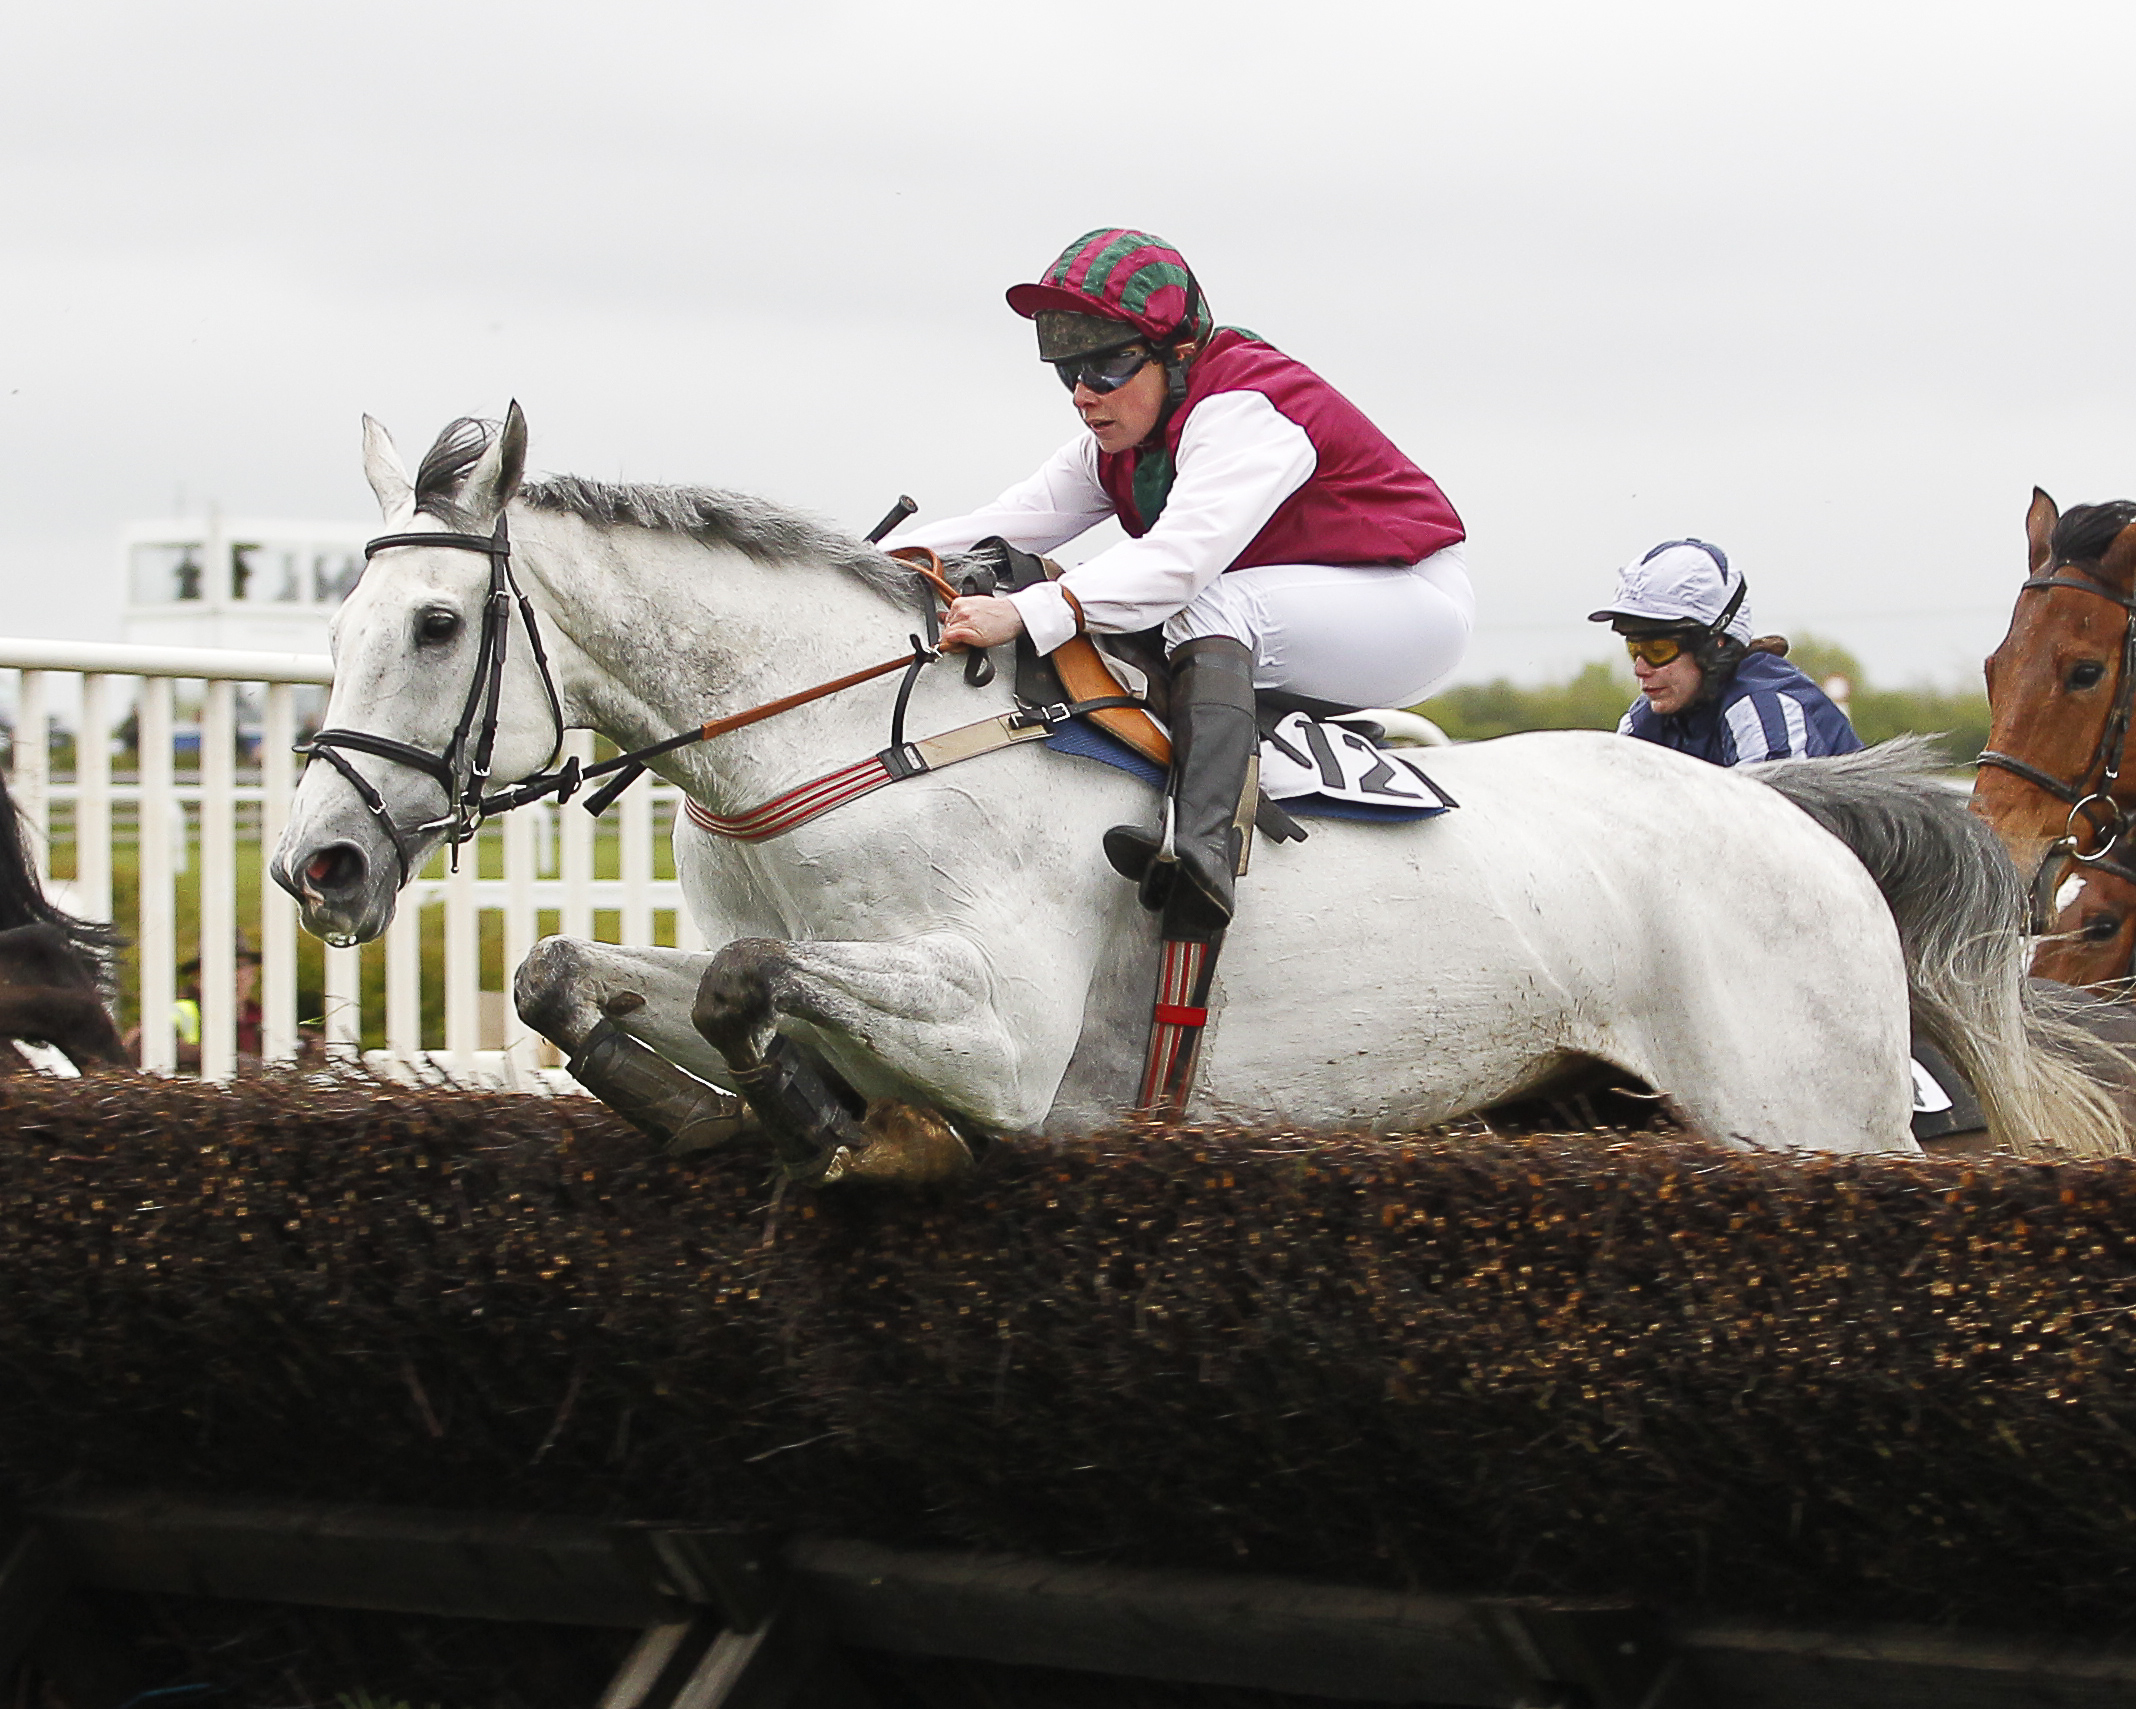 Kelda spent 15 years riding and training racehorses. This is her winning on Good Man Sir in her last season race riding.